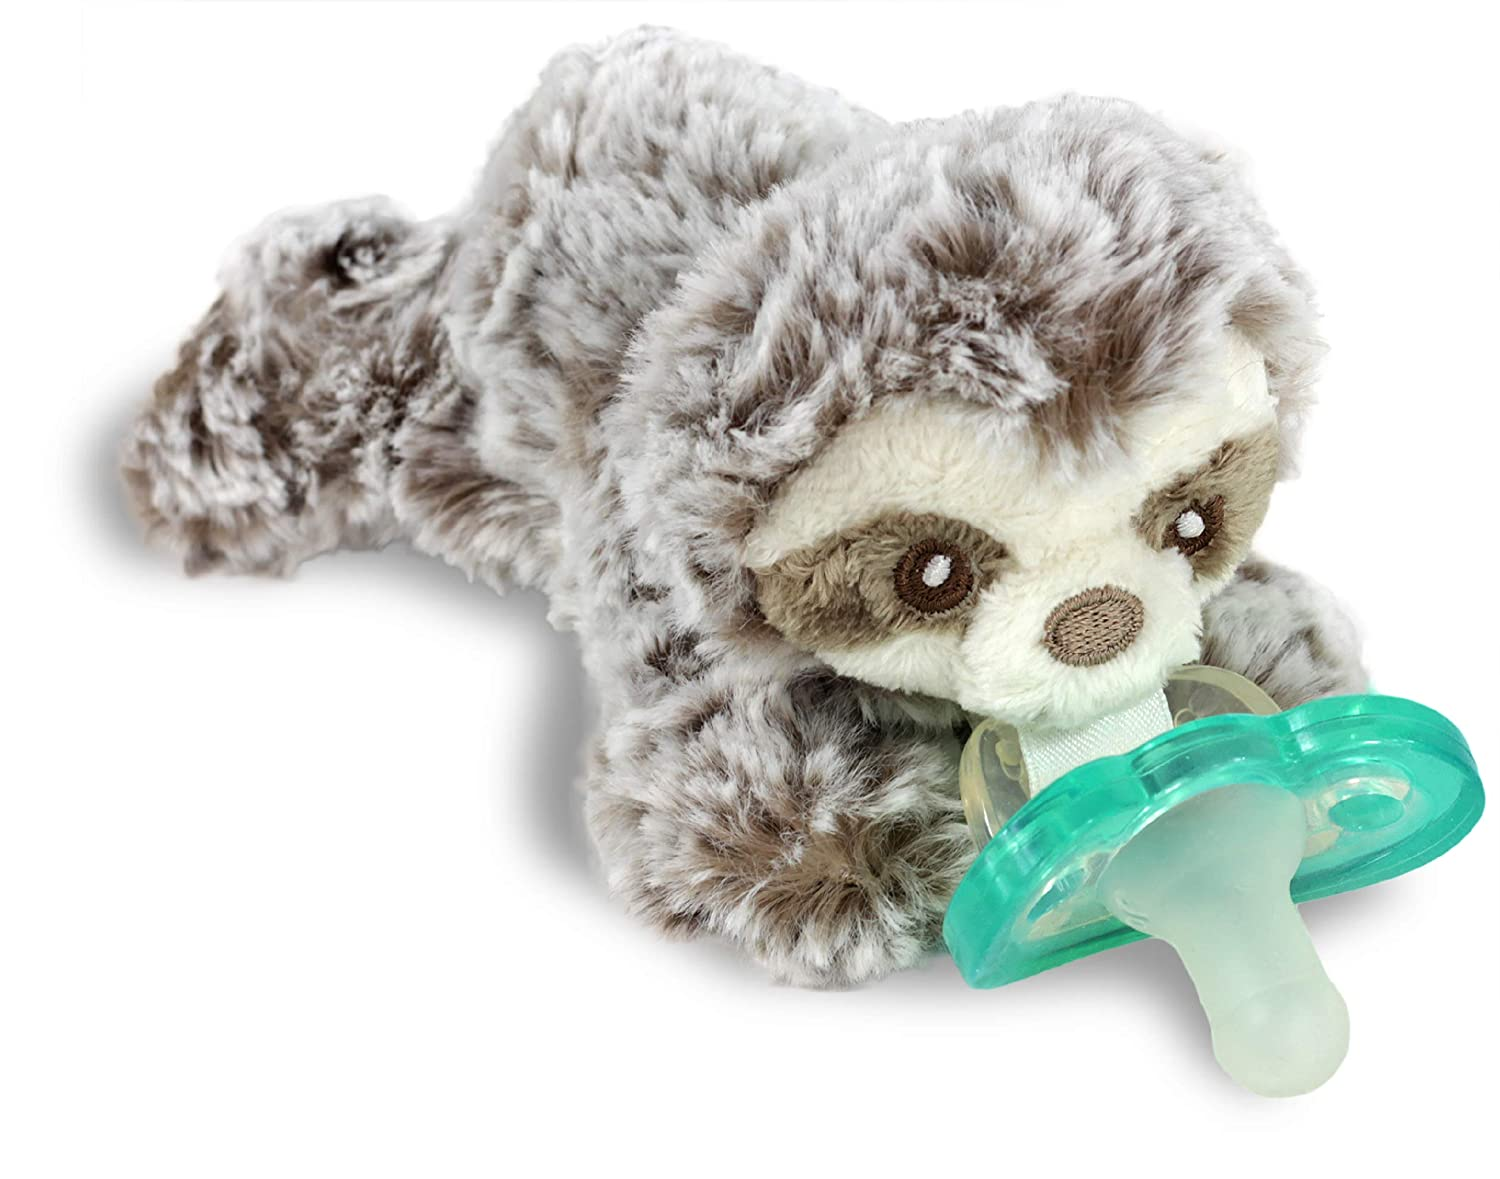 RaZbaby RaZbuddy JollyPop Pacifier Holder w/Removable Baby Pacifier - 0m+ - BPA Free - Sloth